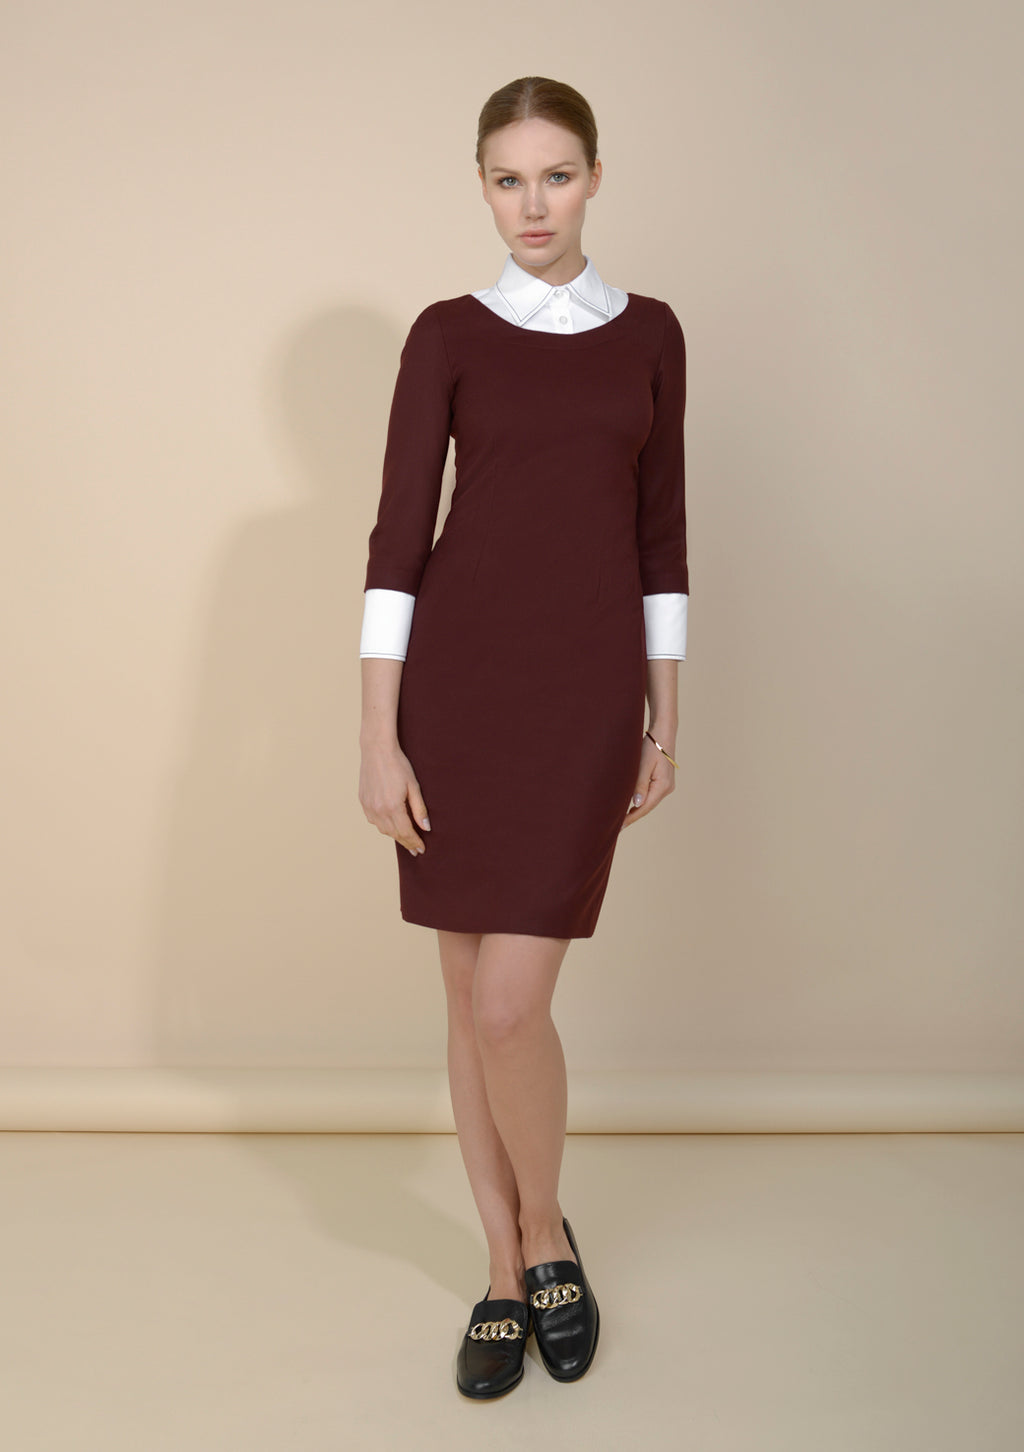 Deep Burgundy office dress with three-quarter length sleeves and just-above-the-knee length. Main photo.